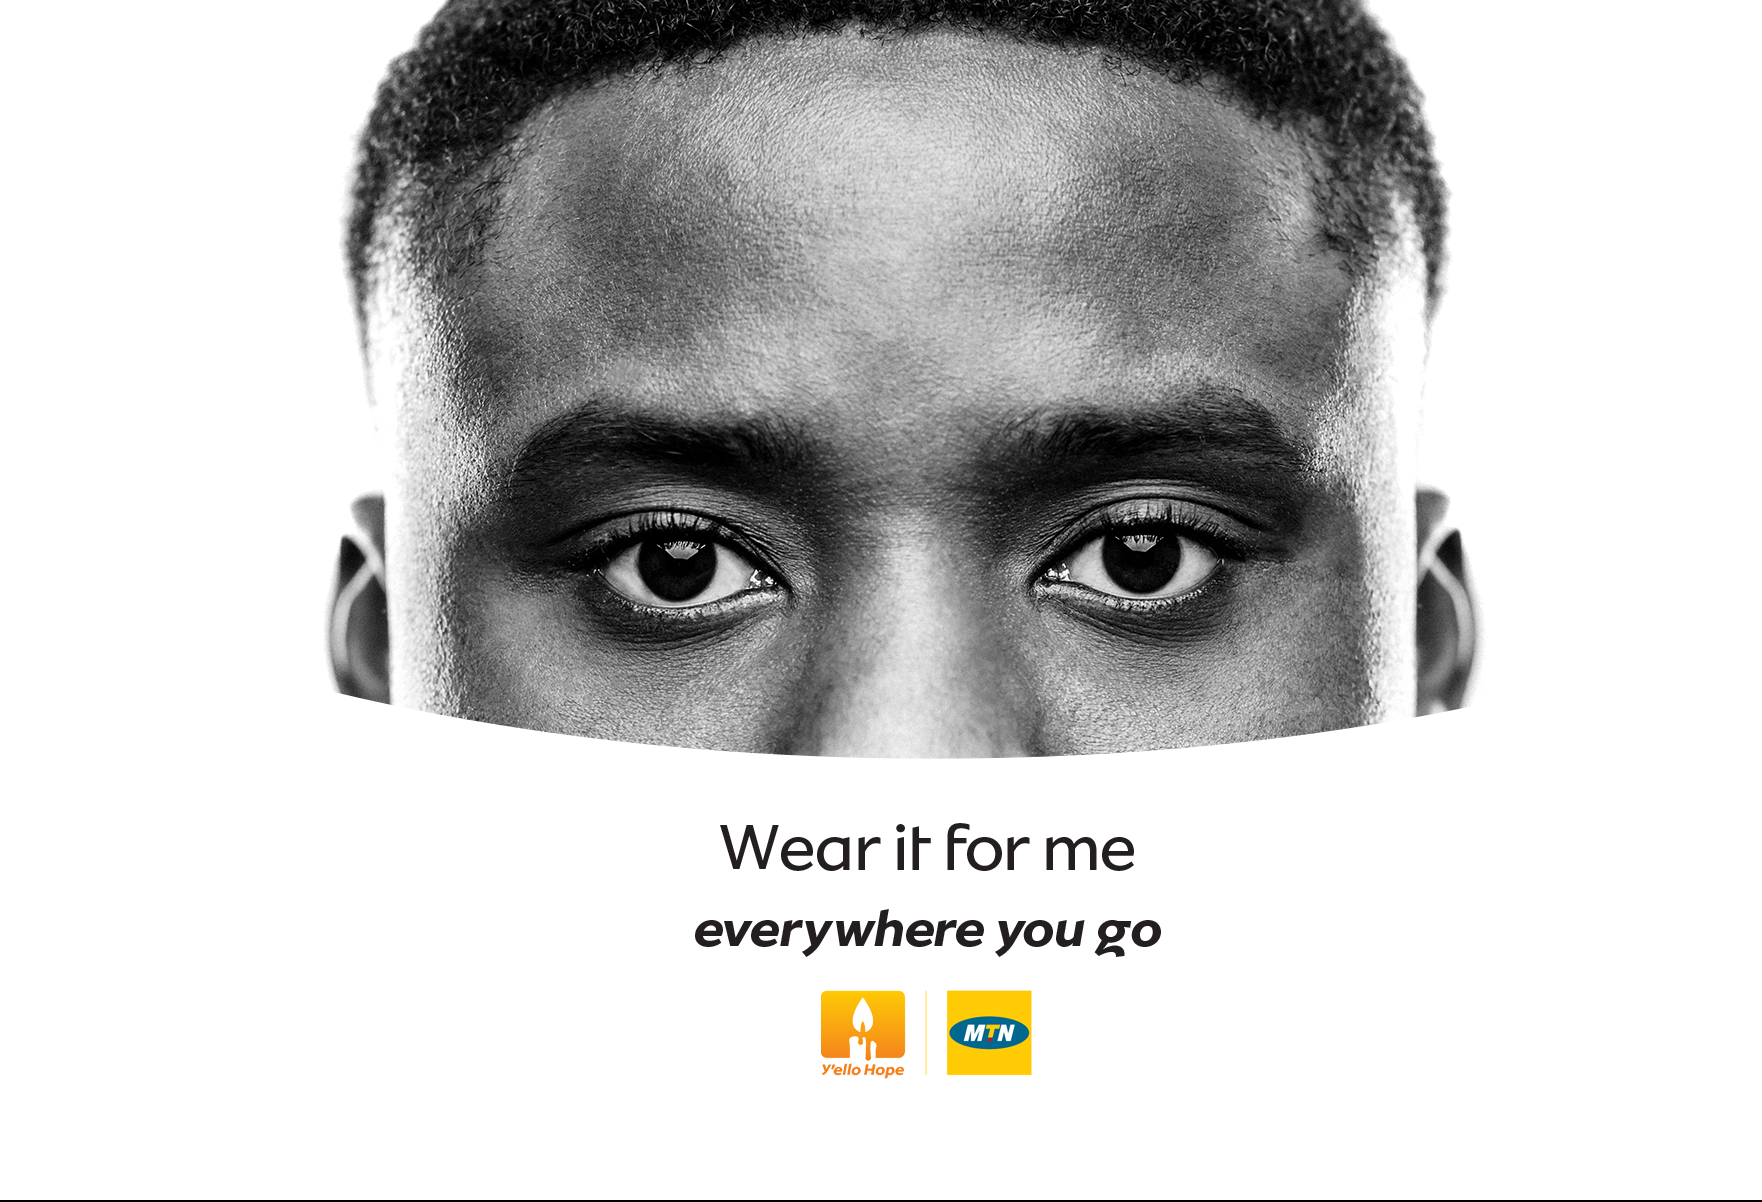 MTN steps up COVID fight with new campaign promoting mask-wearing